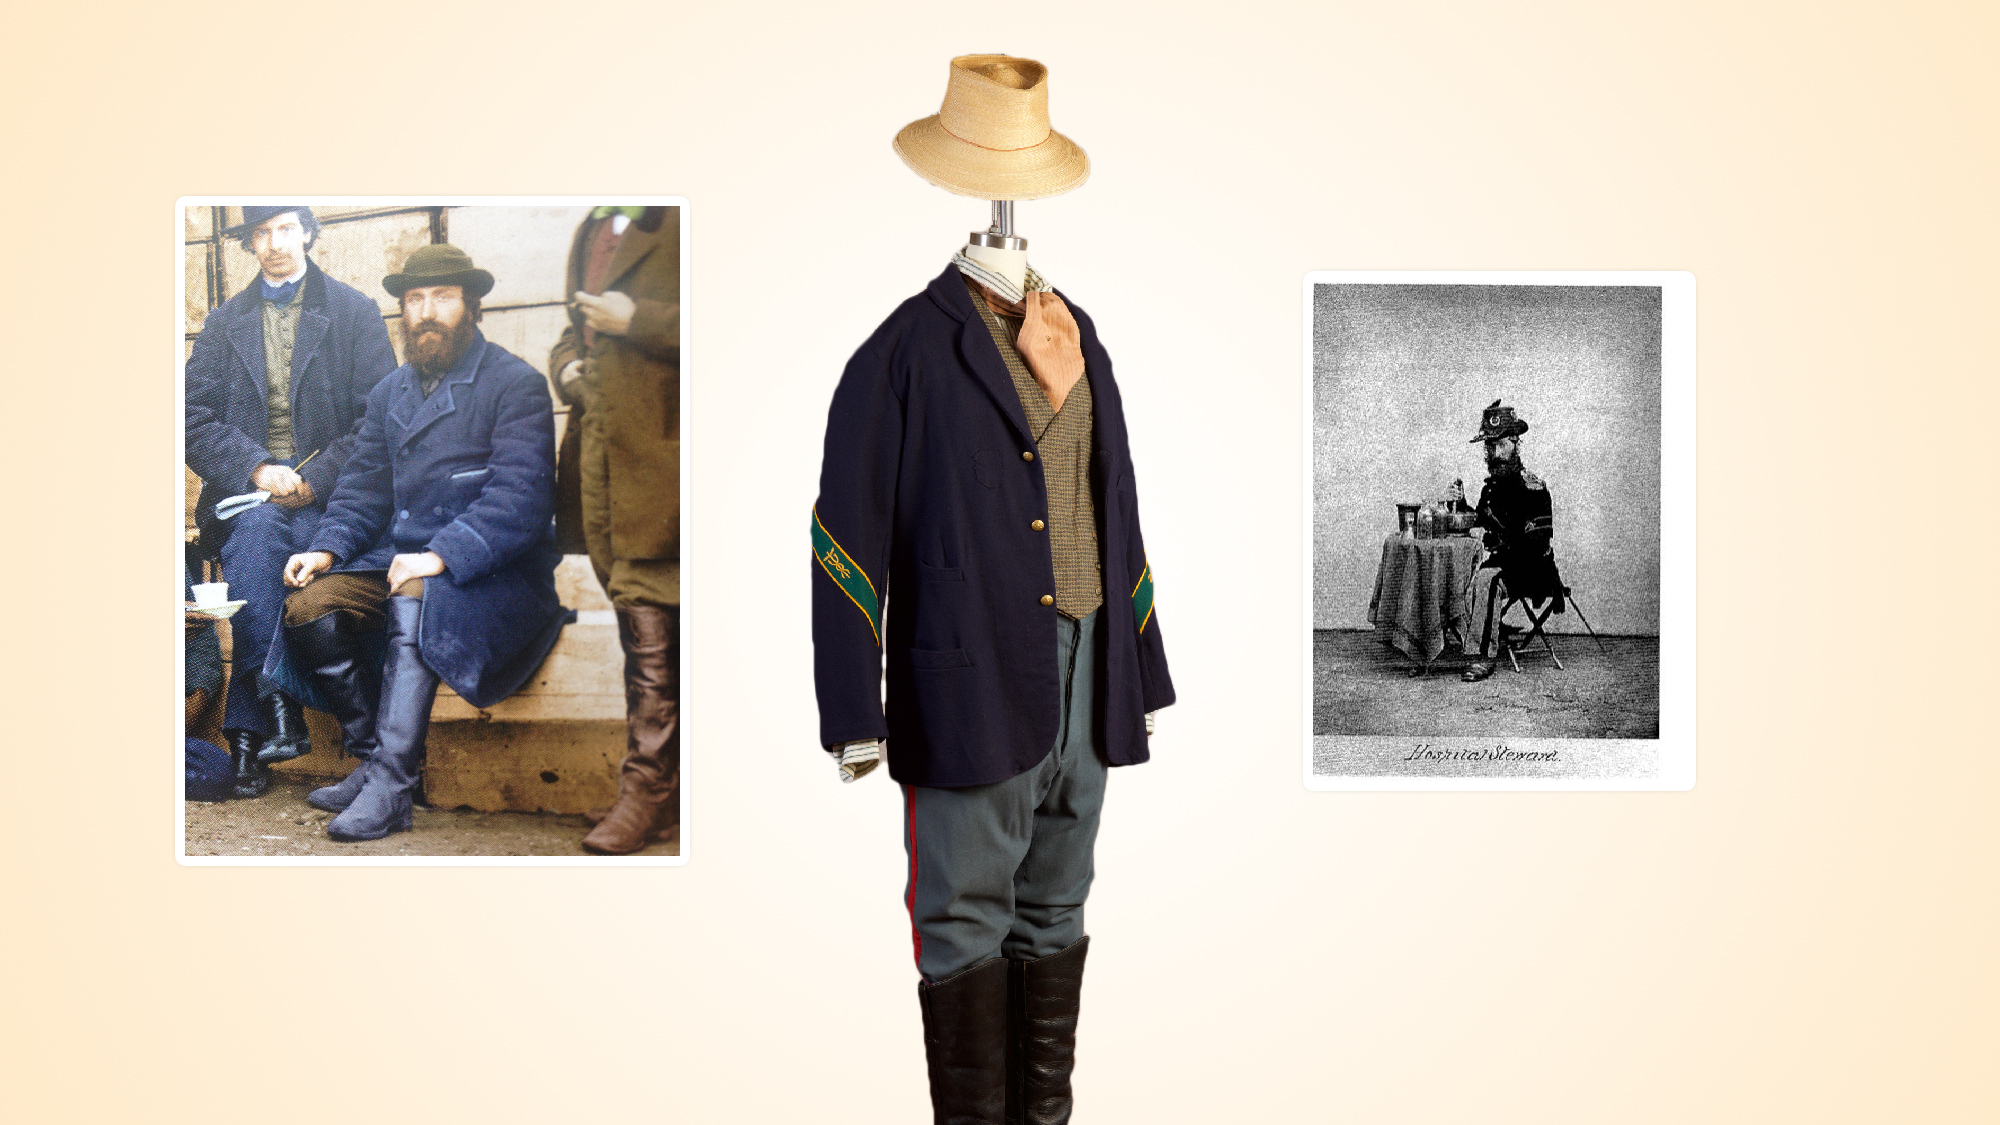 Silas Bullen's Union Stewards Uniform with civilian waistcoat and necktie; straw hat by Ignatius Hats.